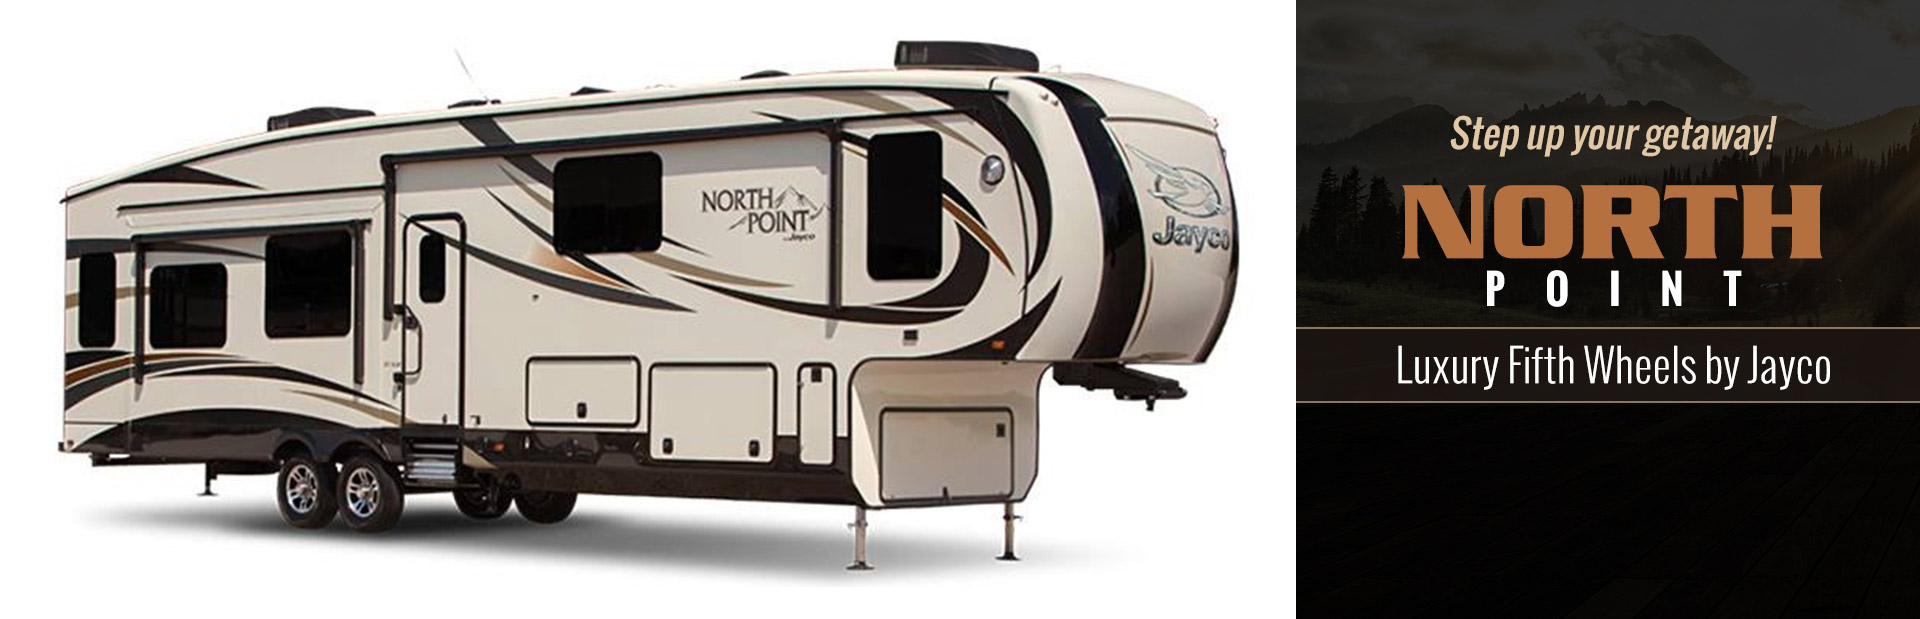 North Point Luxury Fifth Wheels by Jayco: Click here to view the models.